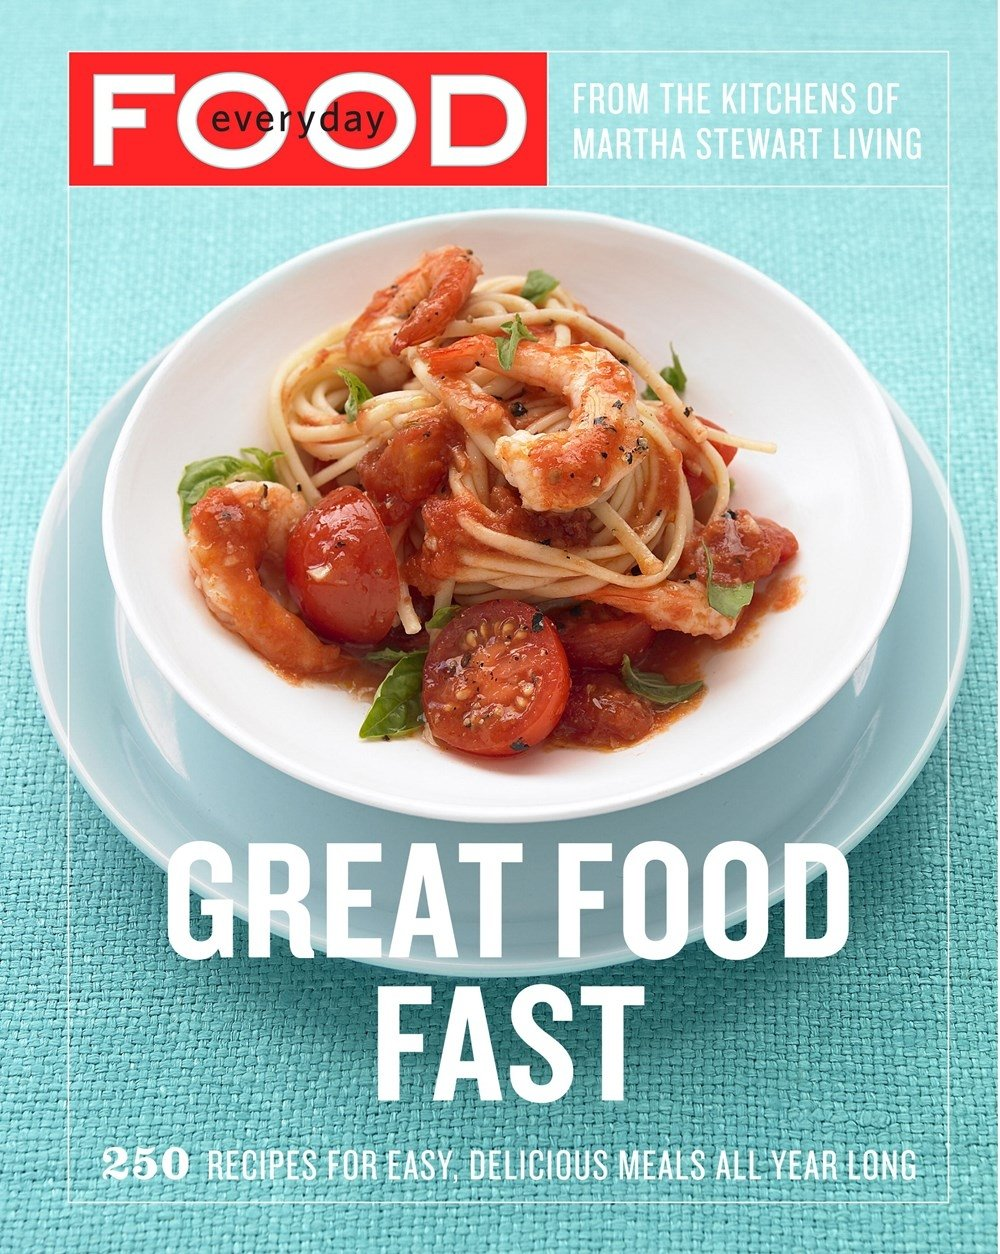 Great Food Fast - by Martha Stewart Living MagazineReal Simple is one of my favorite magazines, and they are the writers behind this book, so it's no surprise that the recipes included are delicious and easy.Almond Apricot Chicken with Mint Pesto is a great dish when you're looking for something different, and the Spinach Penne with Ricotta and Pine Nuts is so delicious and simple that it's almost absurd.Everyday Food: Light is another title from them that I can't wait to pick up!Grab your copy of Great Food Fast here.